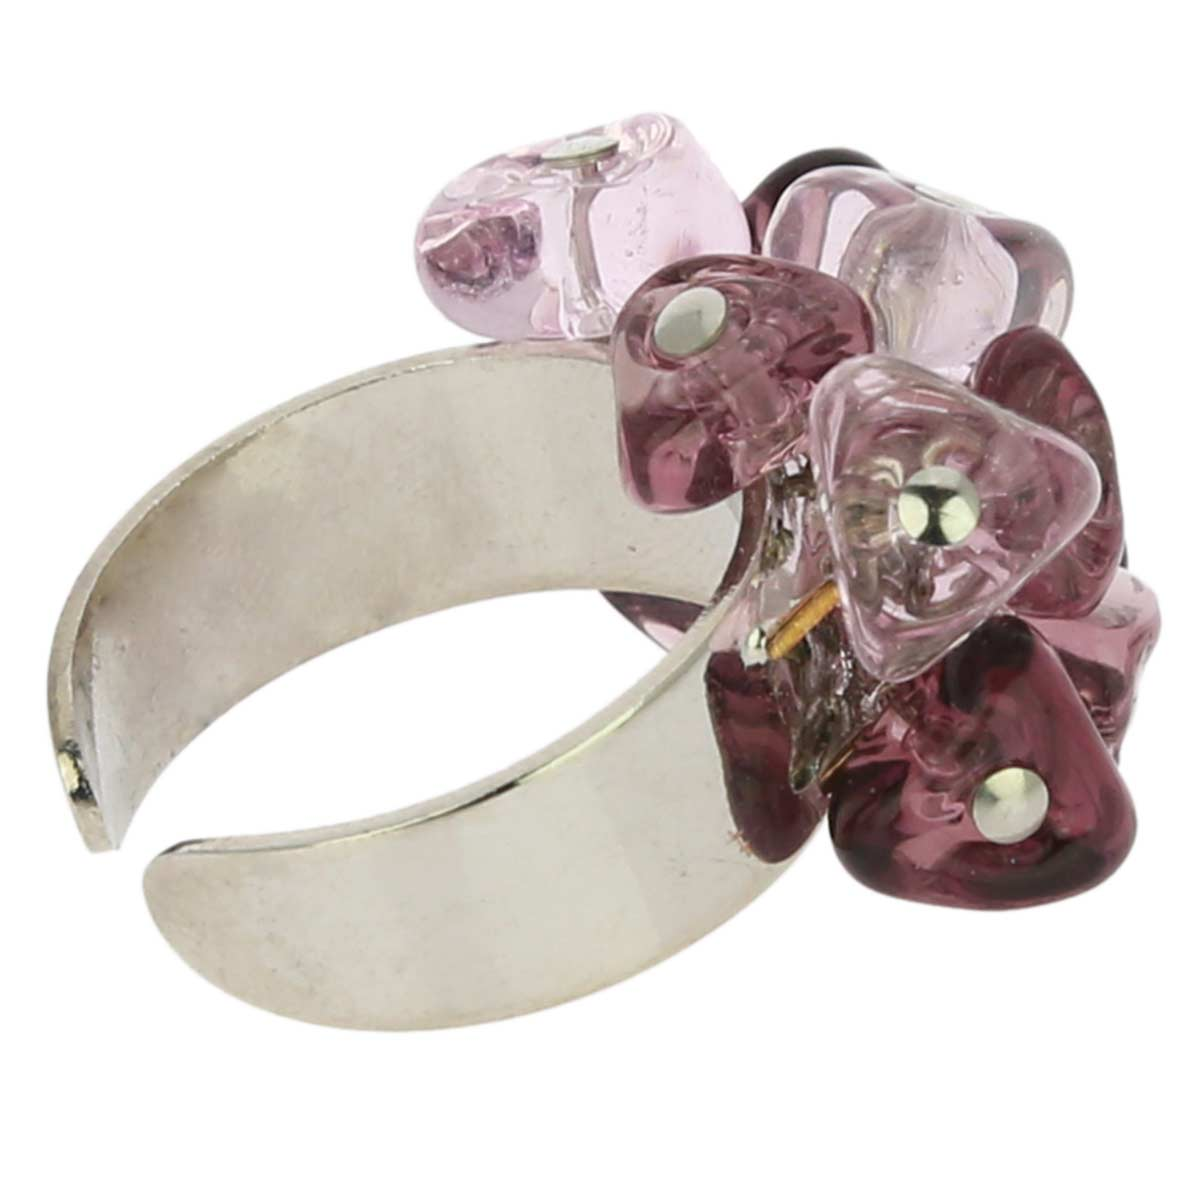 Preziosa Murano Glass Ring - Amethyst